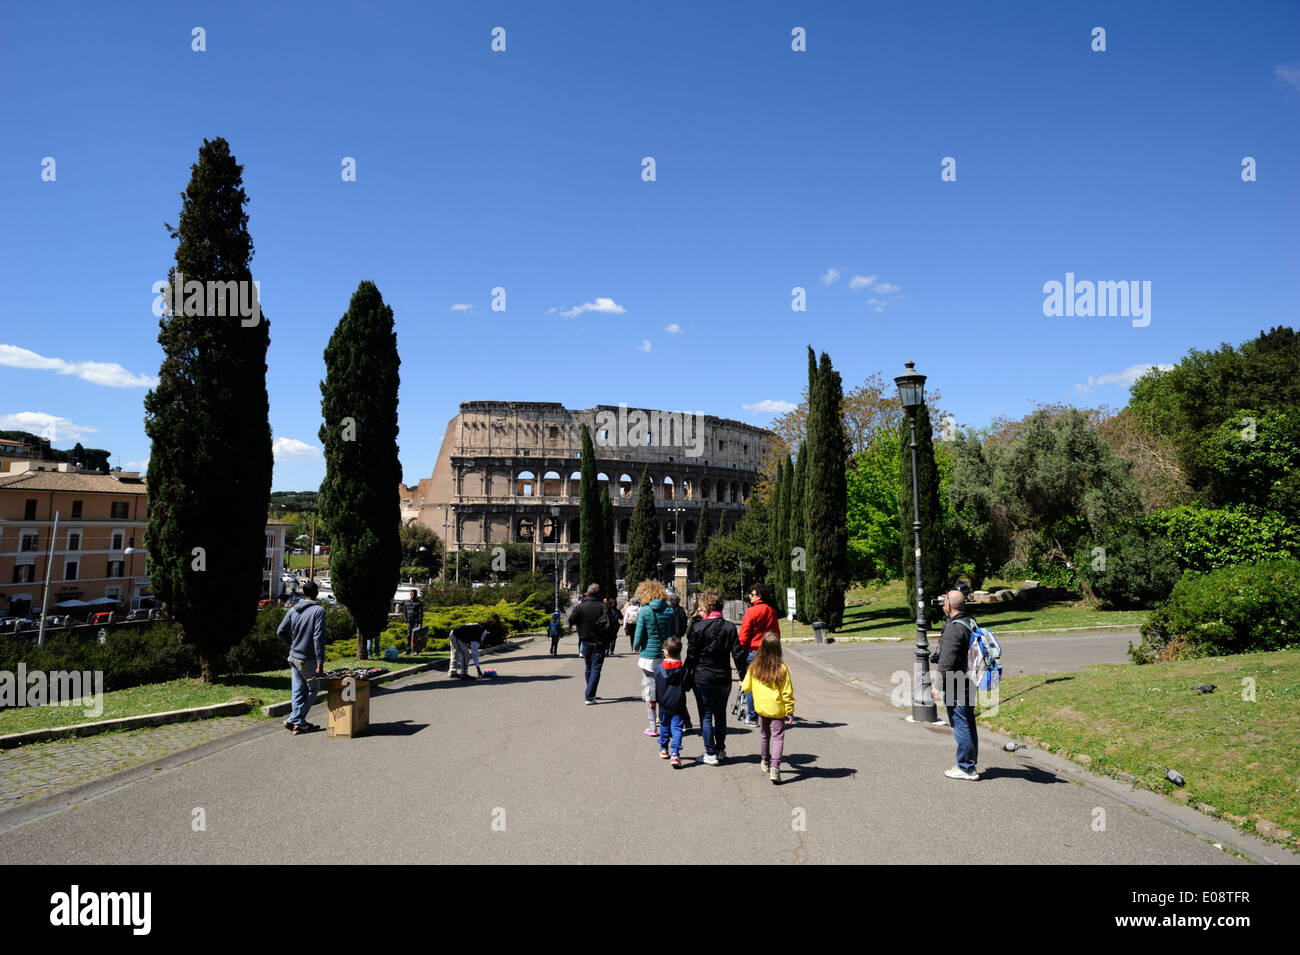 italy, rome, colle oppio (oppian hill) and colosseum - Stock Image